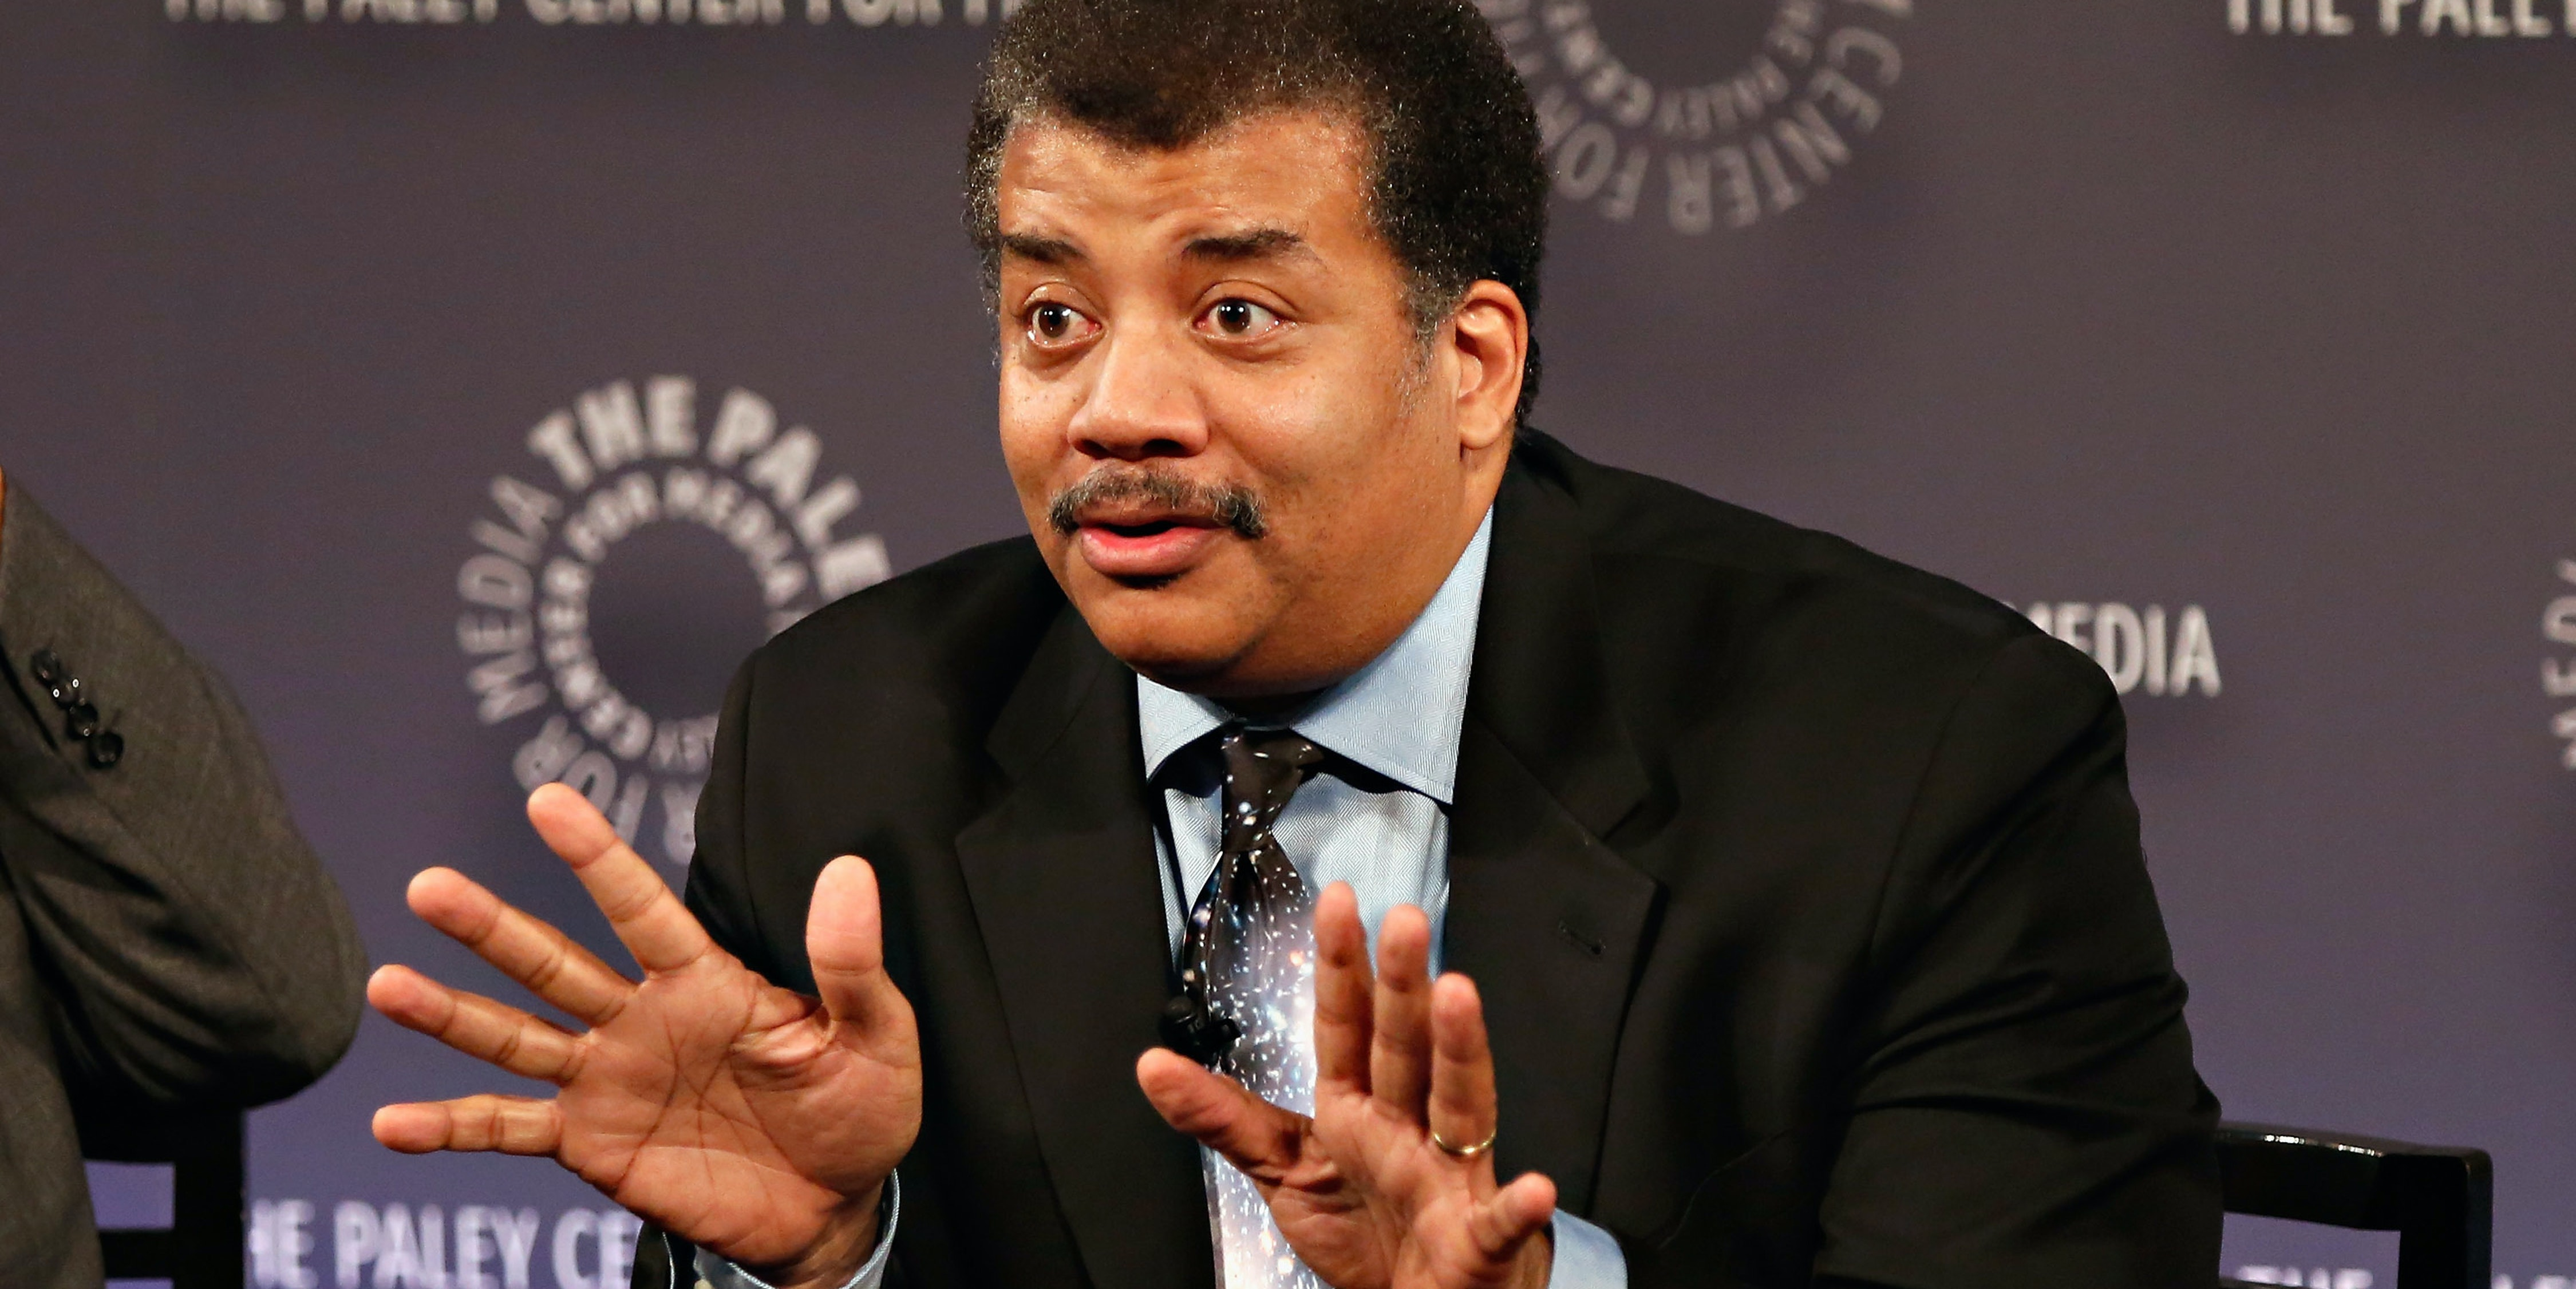 Astrophysicist/ author/ host Neil deGrasse Tyson attends the 'Cosmos: A Spacetime Odyssey' Screening Event and Panel at the Paley Center for Media on June 4, 2014 in New York City.